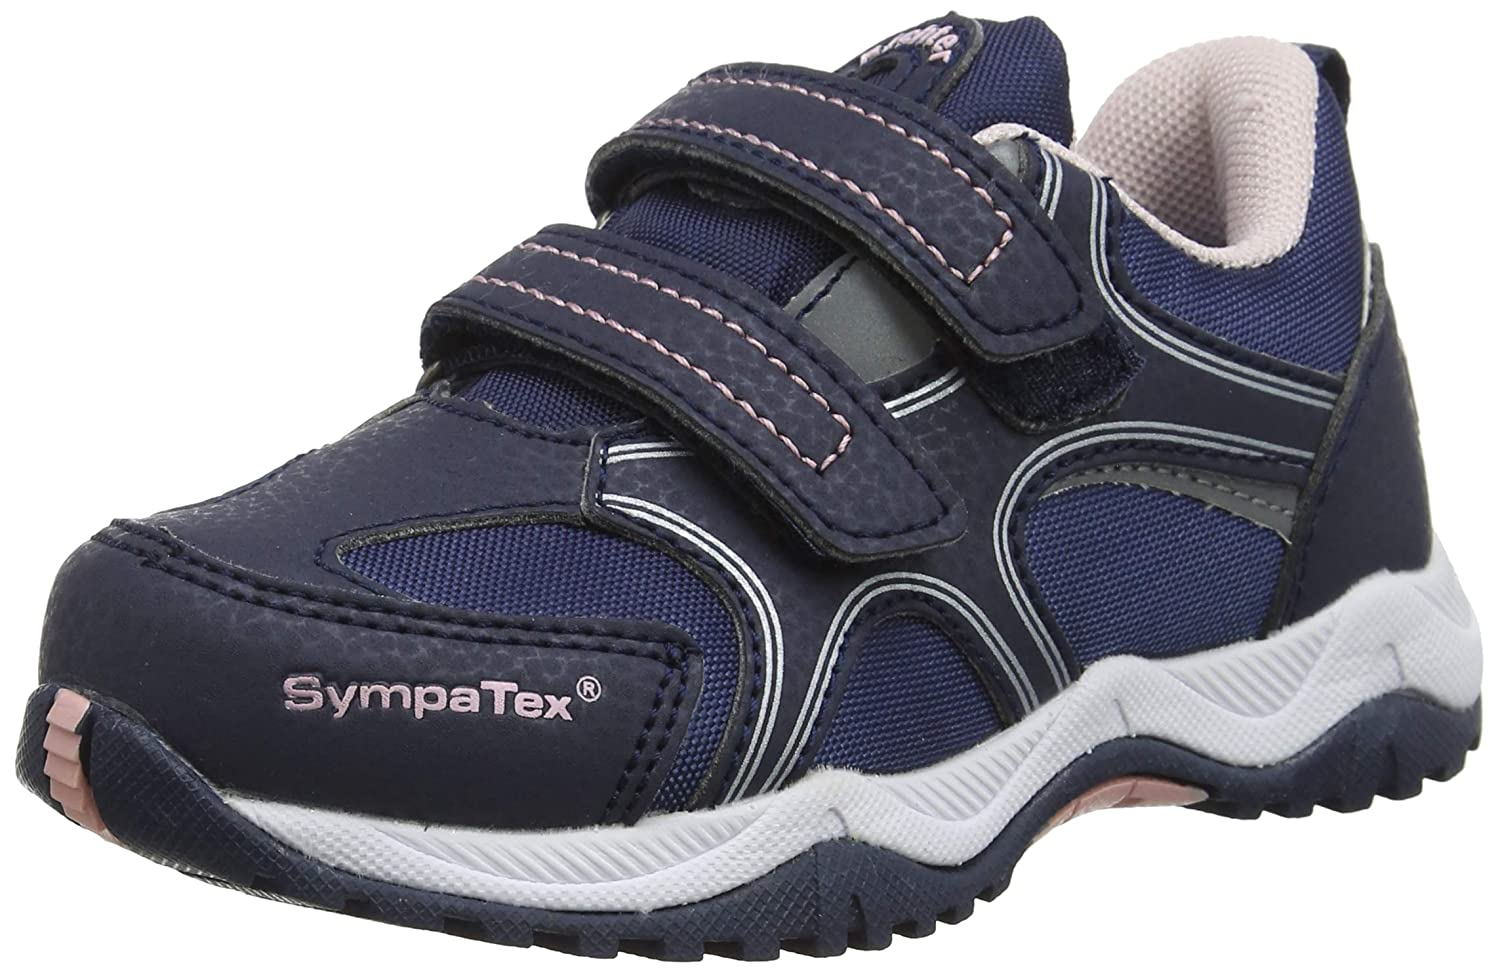 Bleu (Atlantic Passion 7201) Richter Kinderchaussures 31.4818.2571, Baskets Mode Fille 26 EU